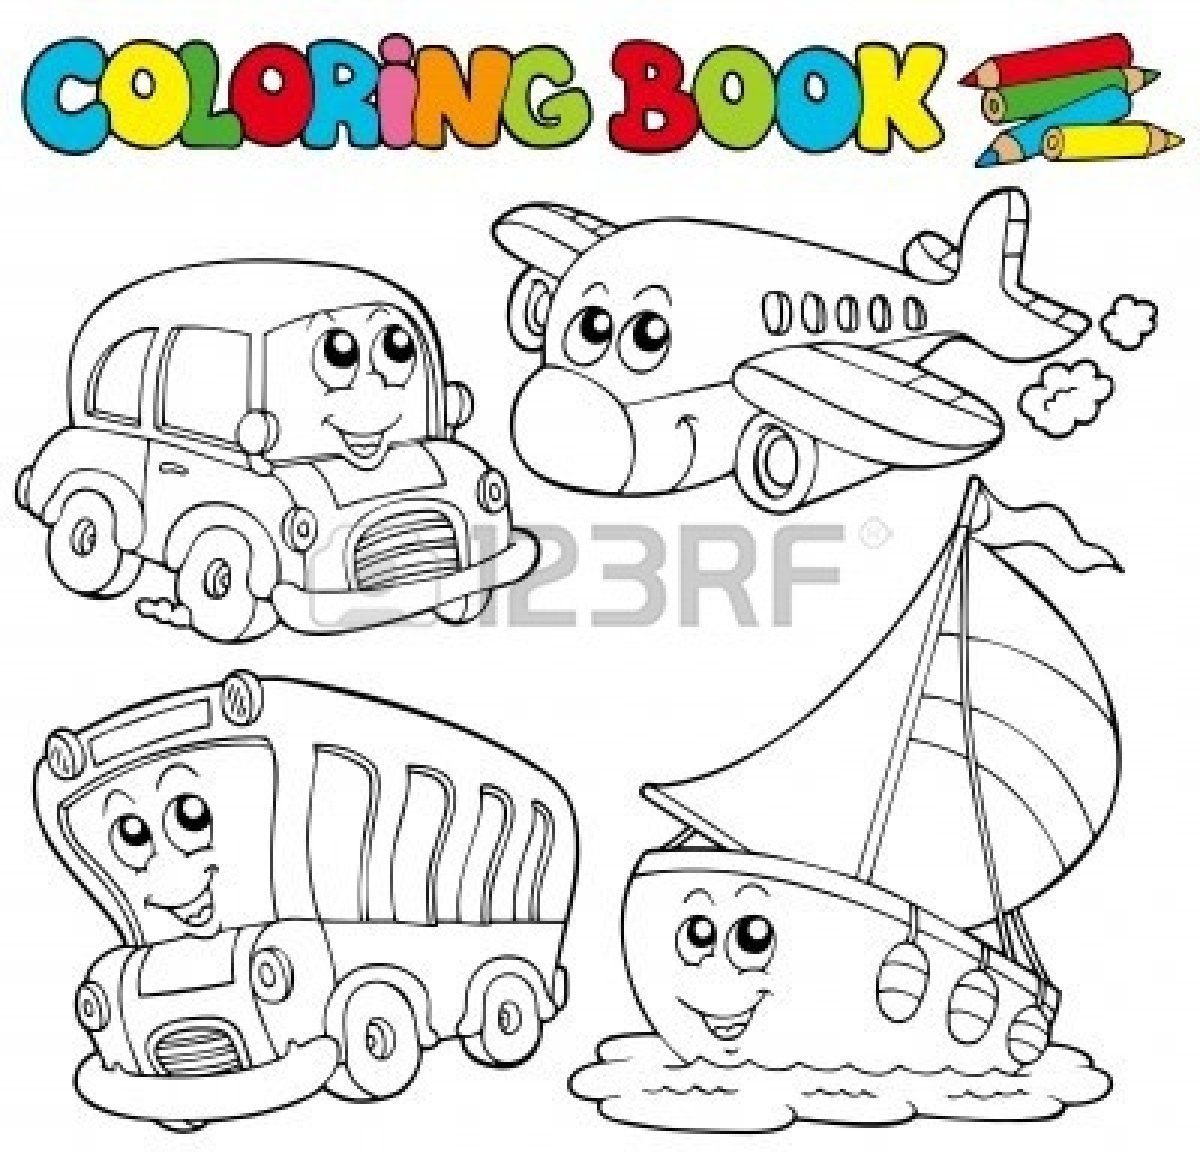 Free Download My Coloring Book For Preschool Early Kindergarten Preschool Books Kindergarten Books Printable Books